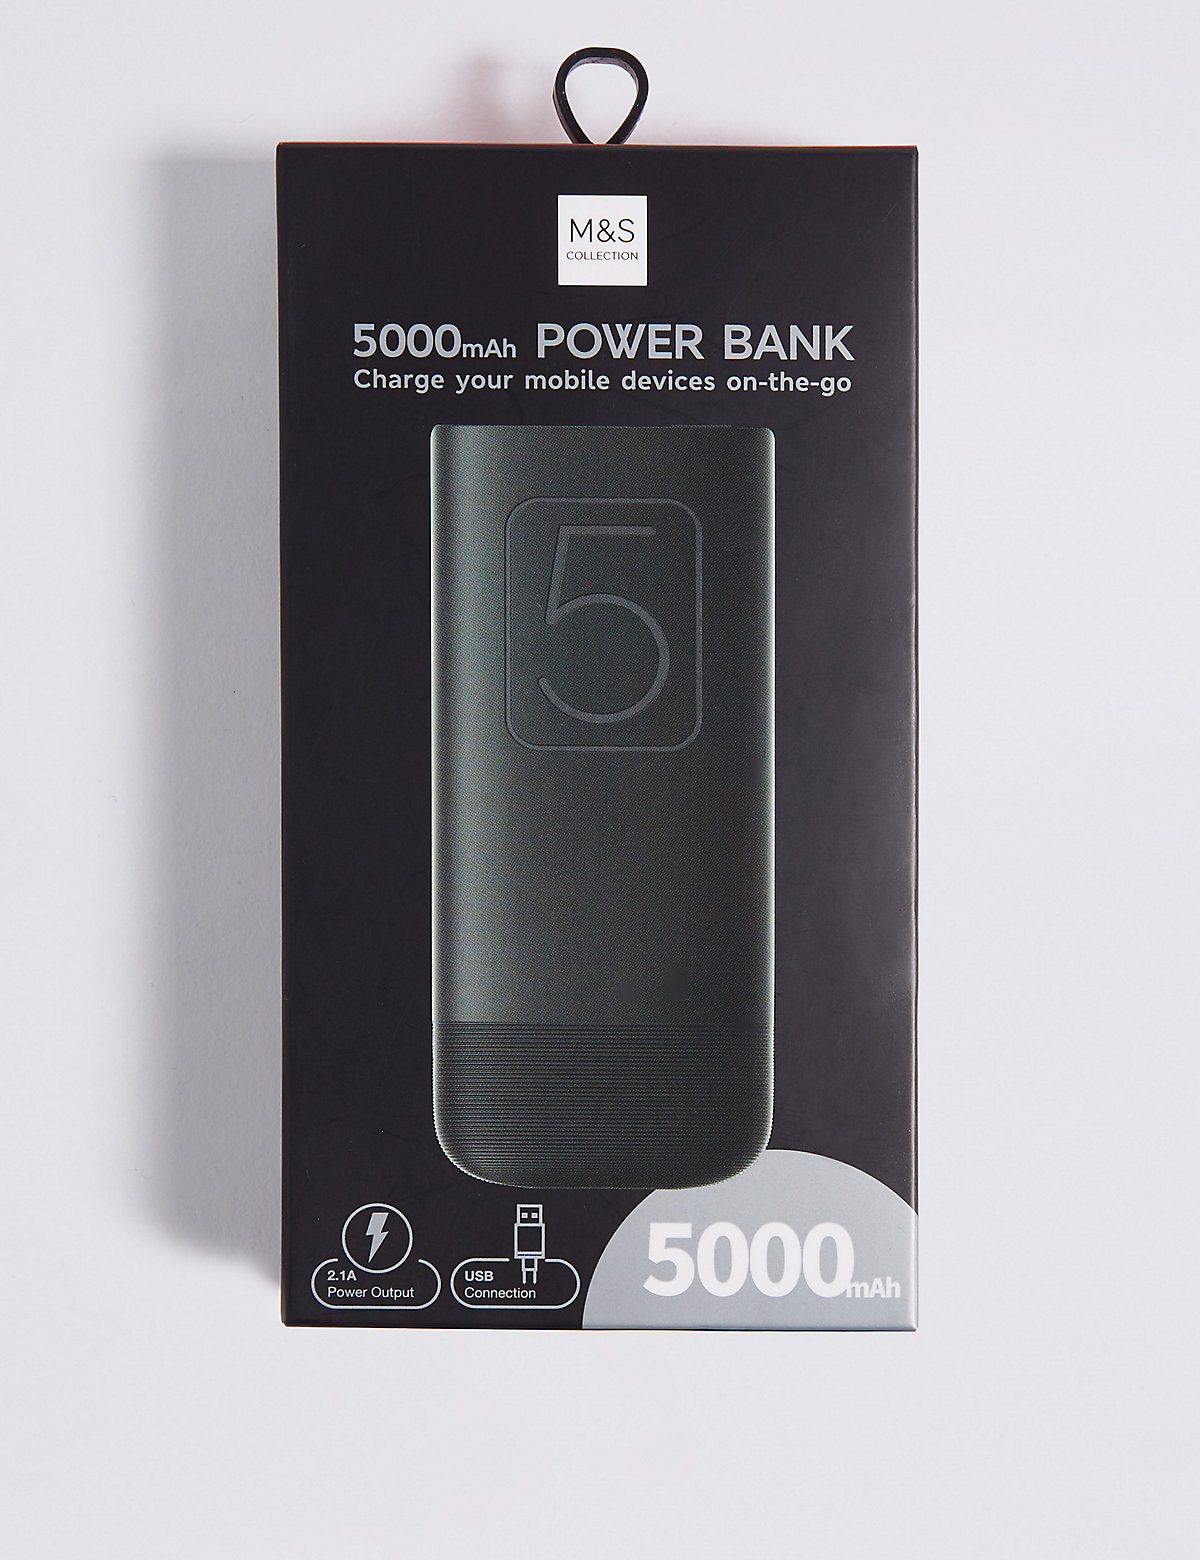 M&S Collection Compact Power Bank